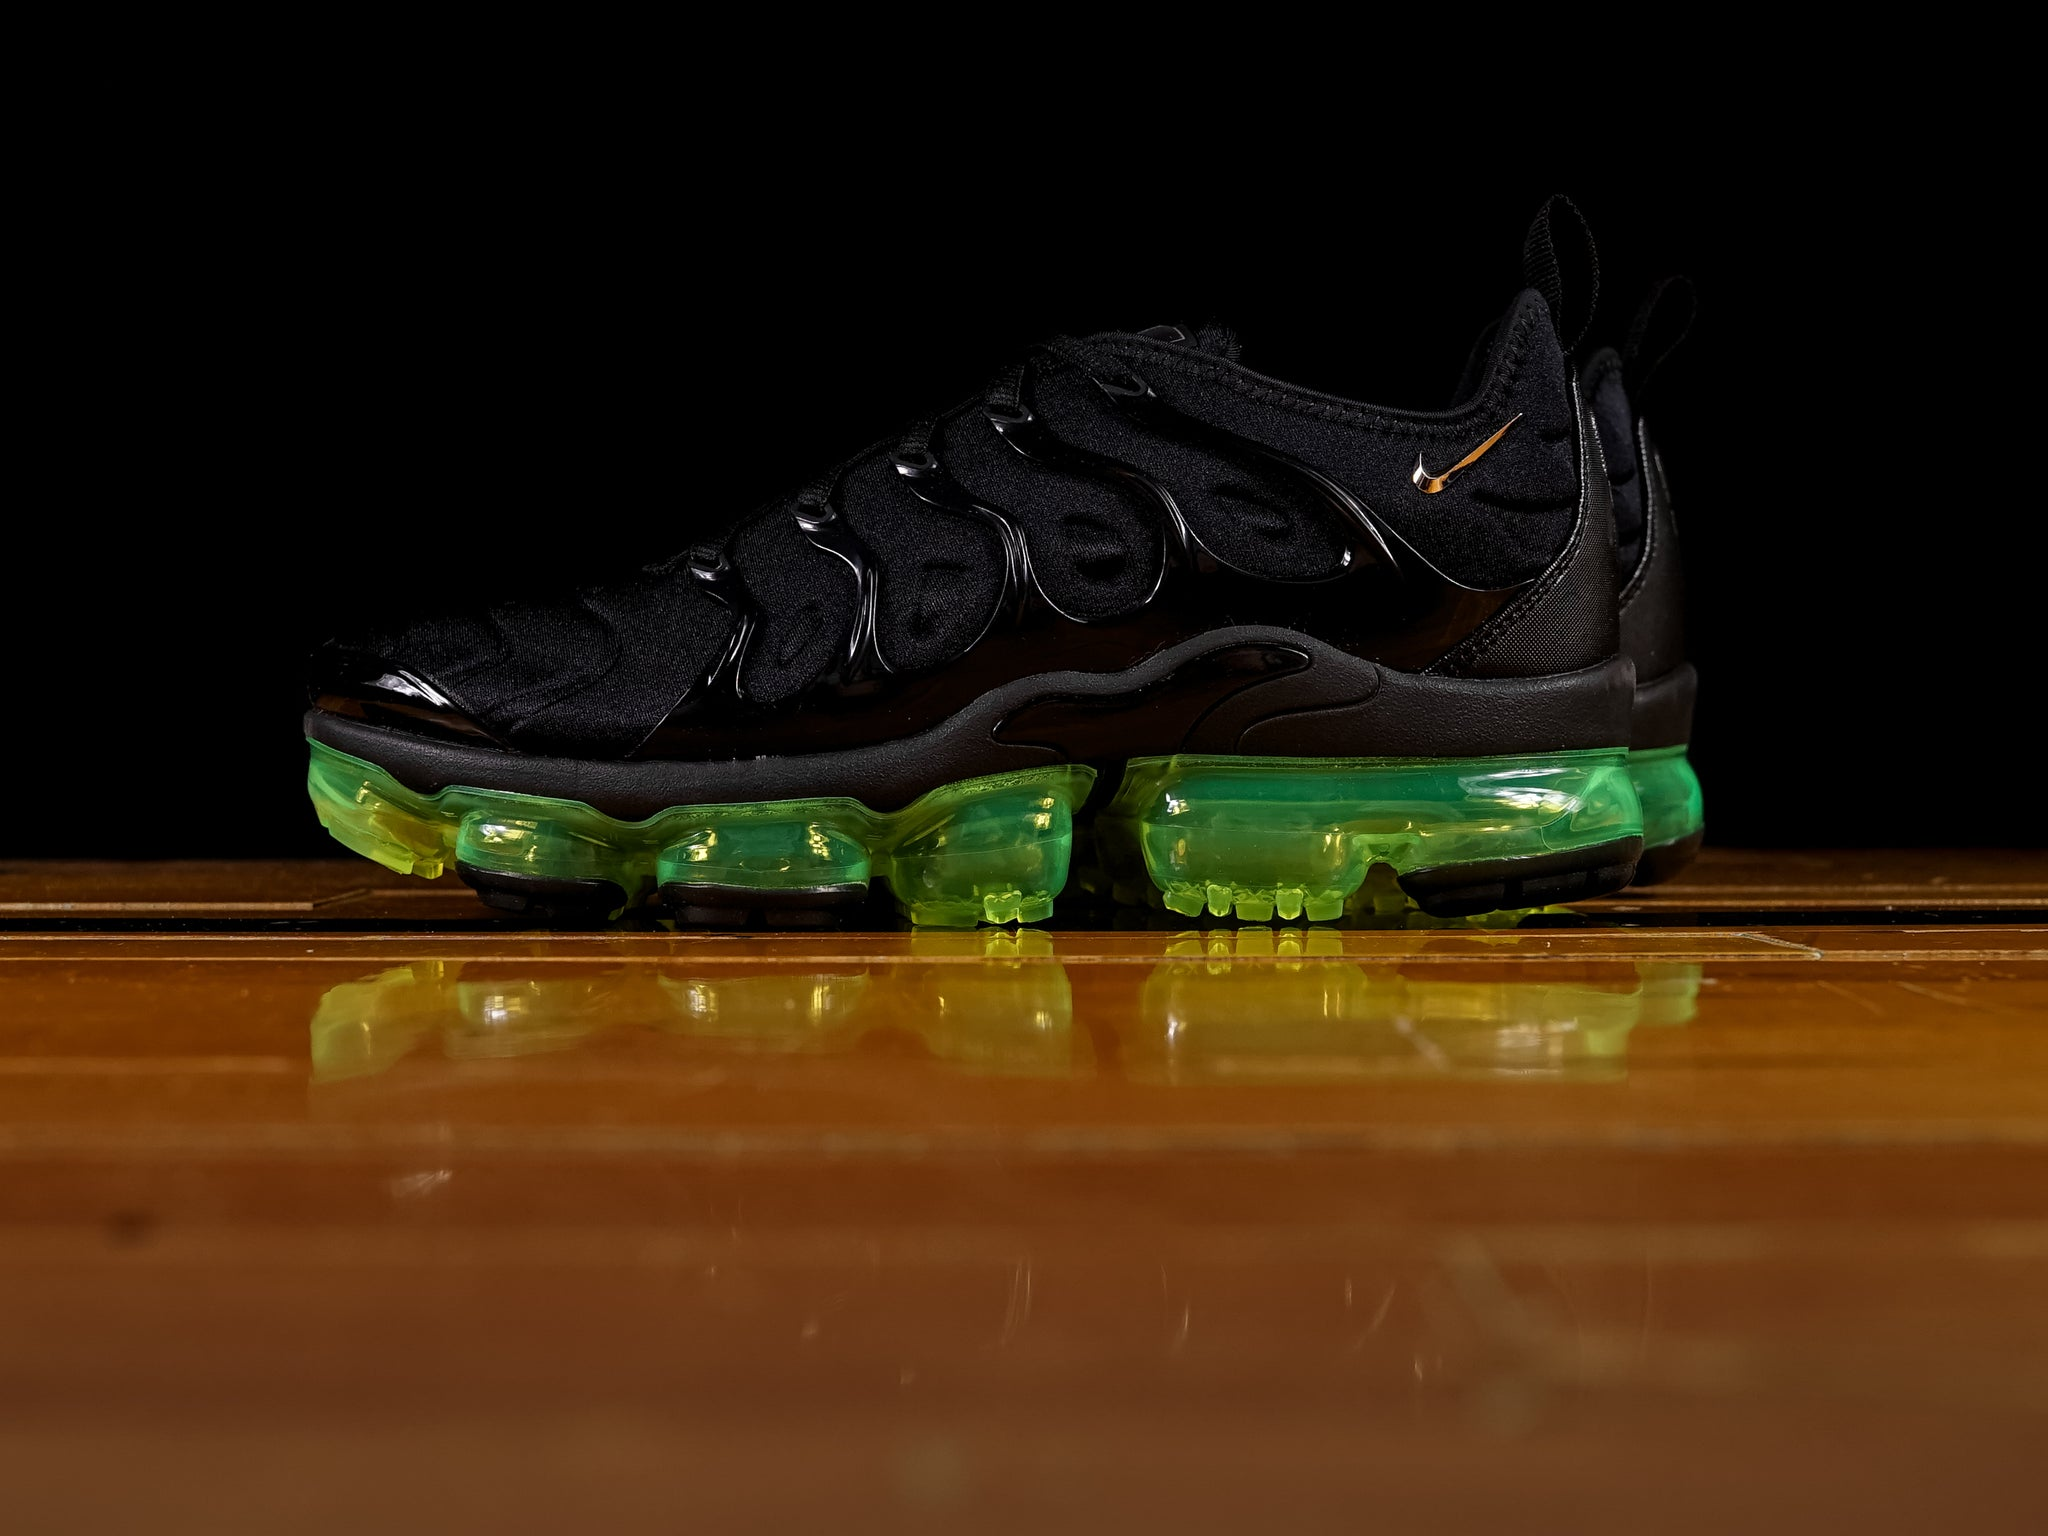 c656abdc7be02 Men s Nike Air Vapormax Plus  Volt